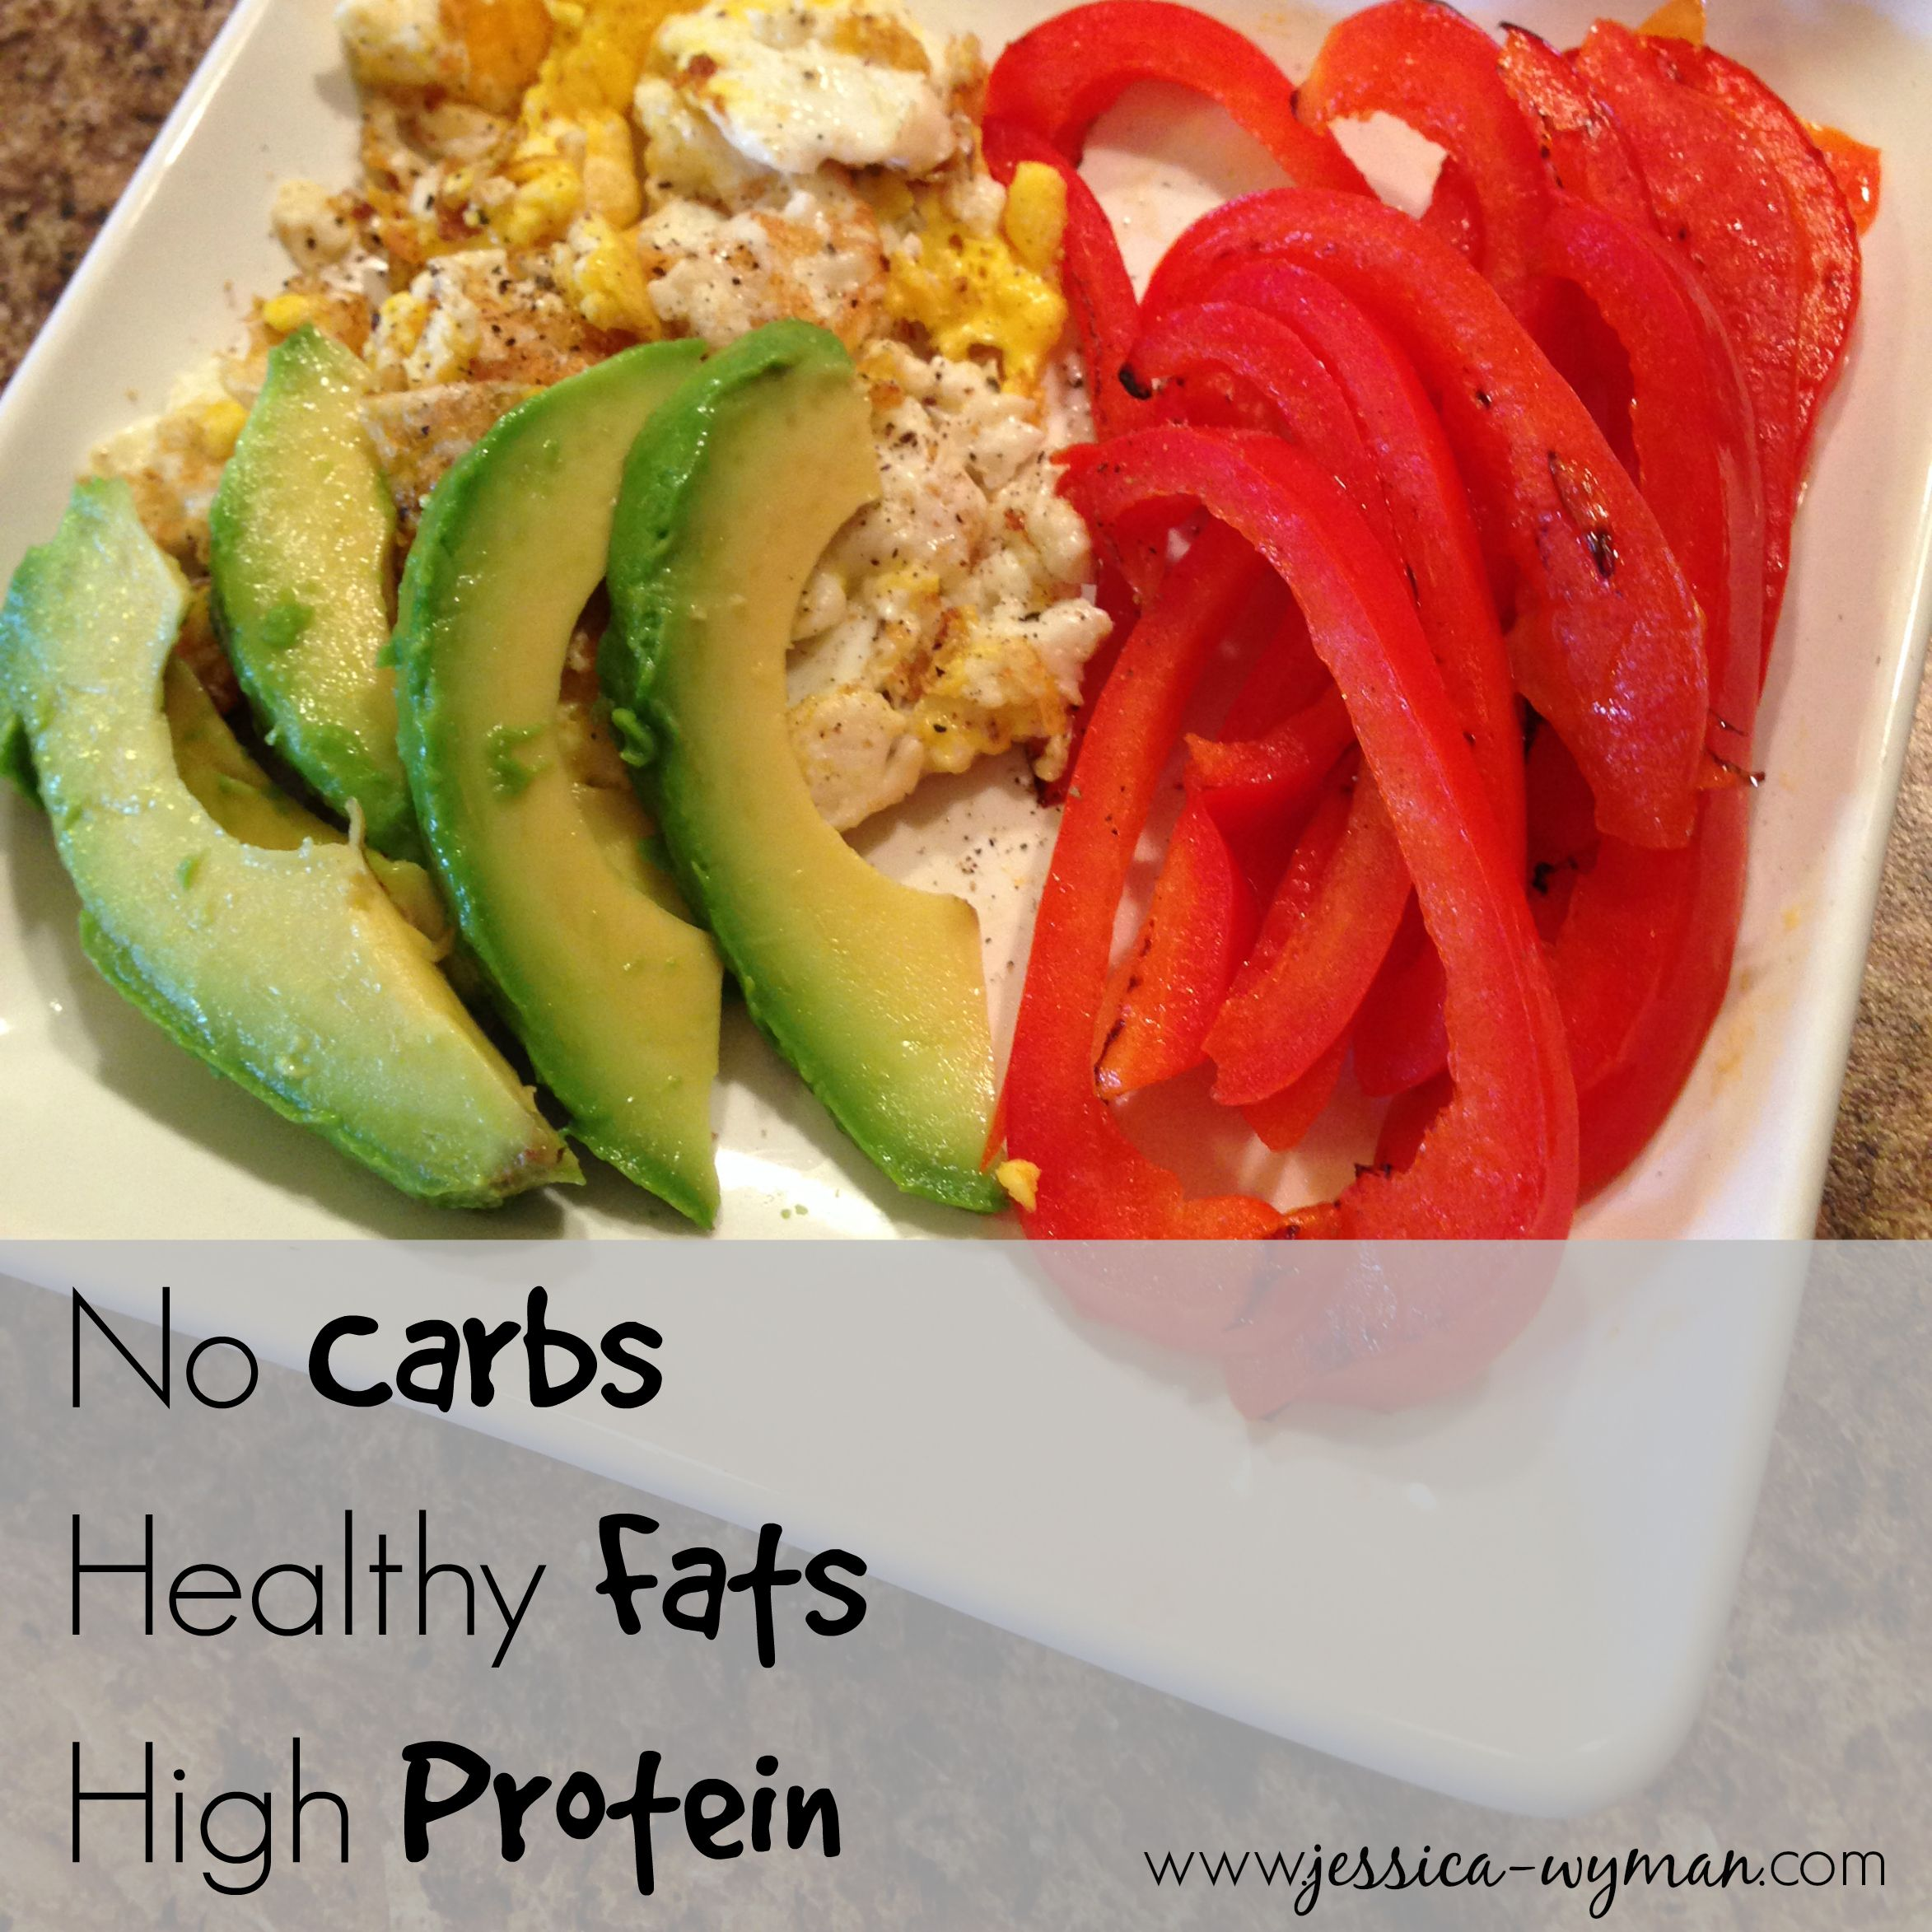 """No Carb, High Protein, Healthy Fats 4 ingredient """"fast"""